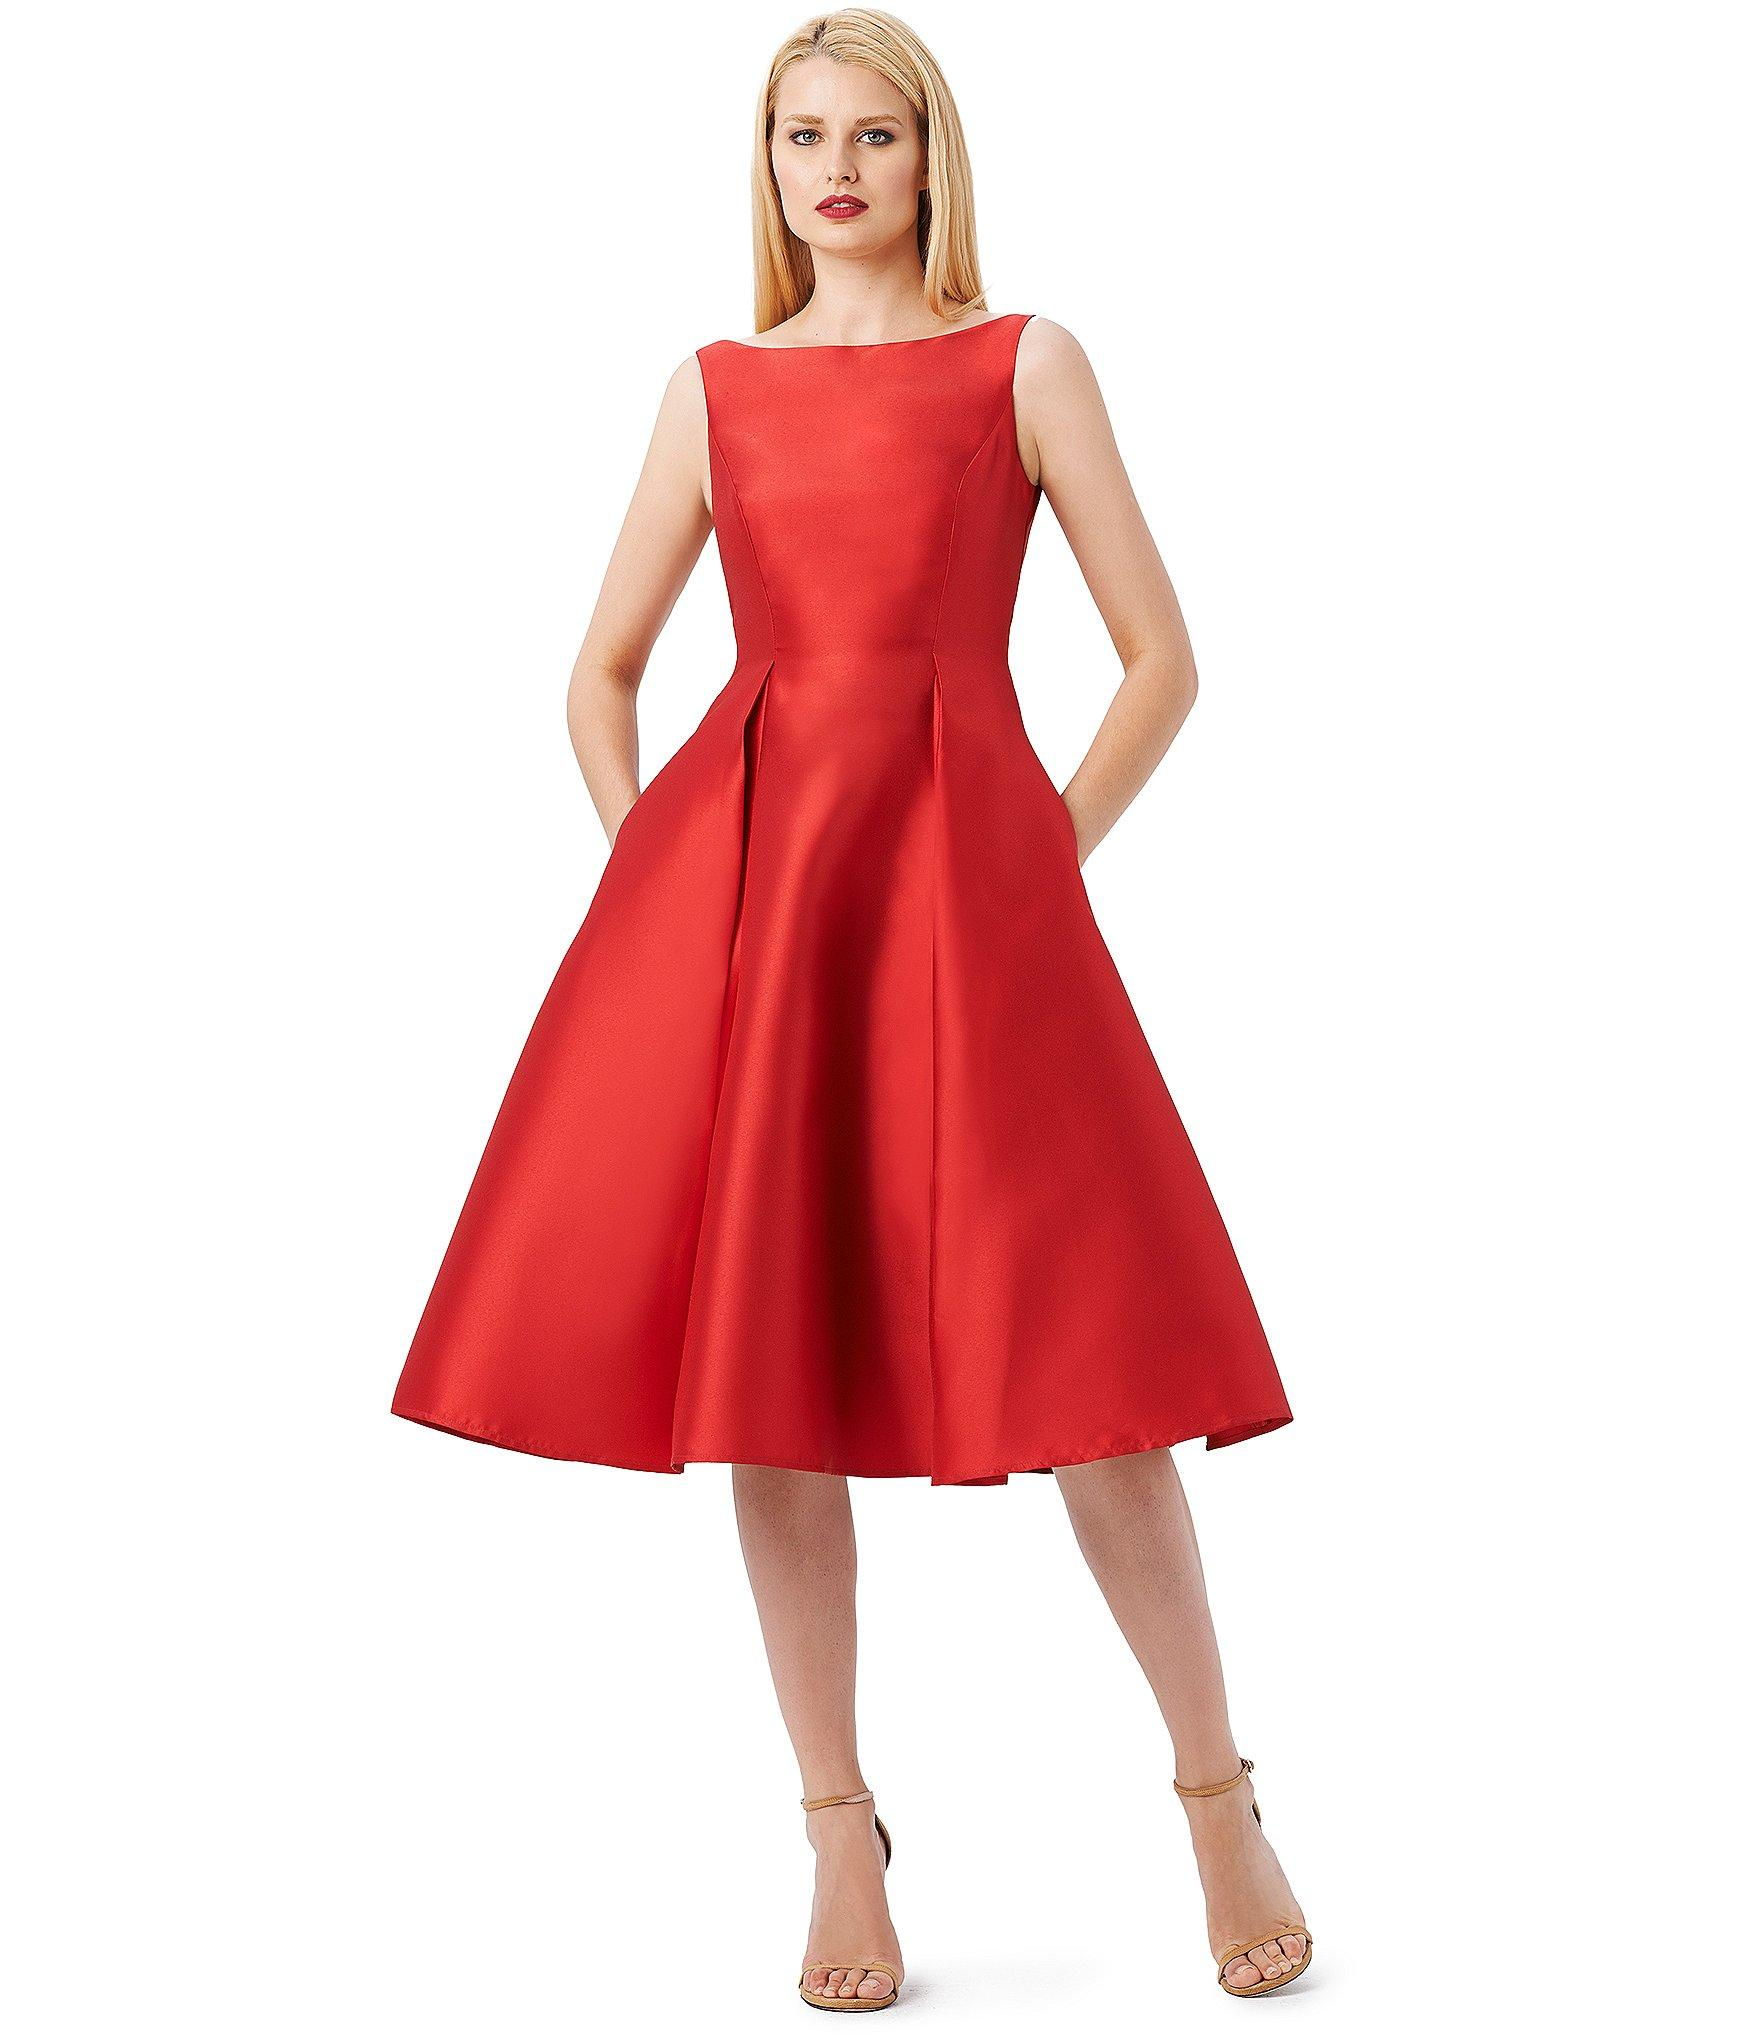 Images of Red Dresses At Dillards - Watch Out, There\'s a Clothes About